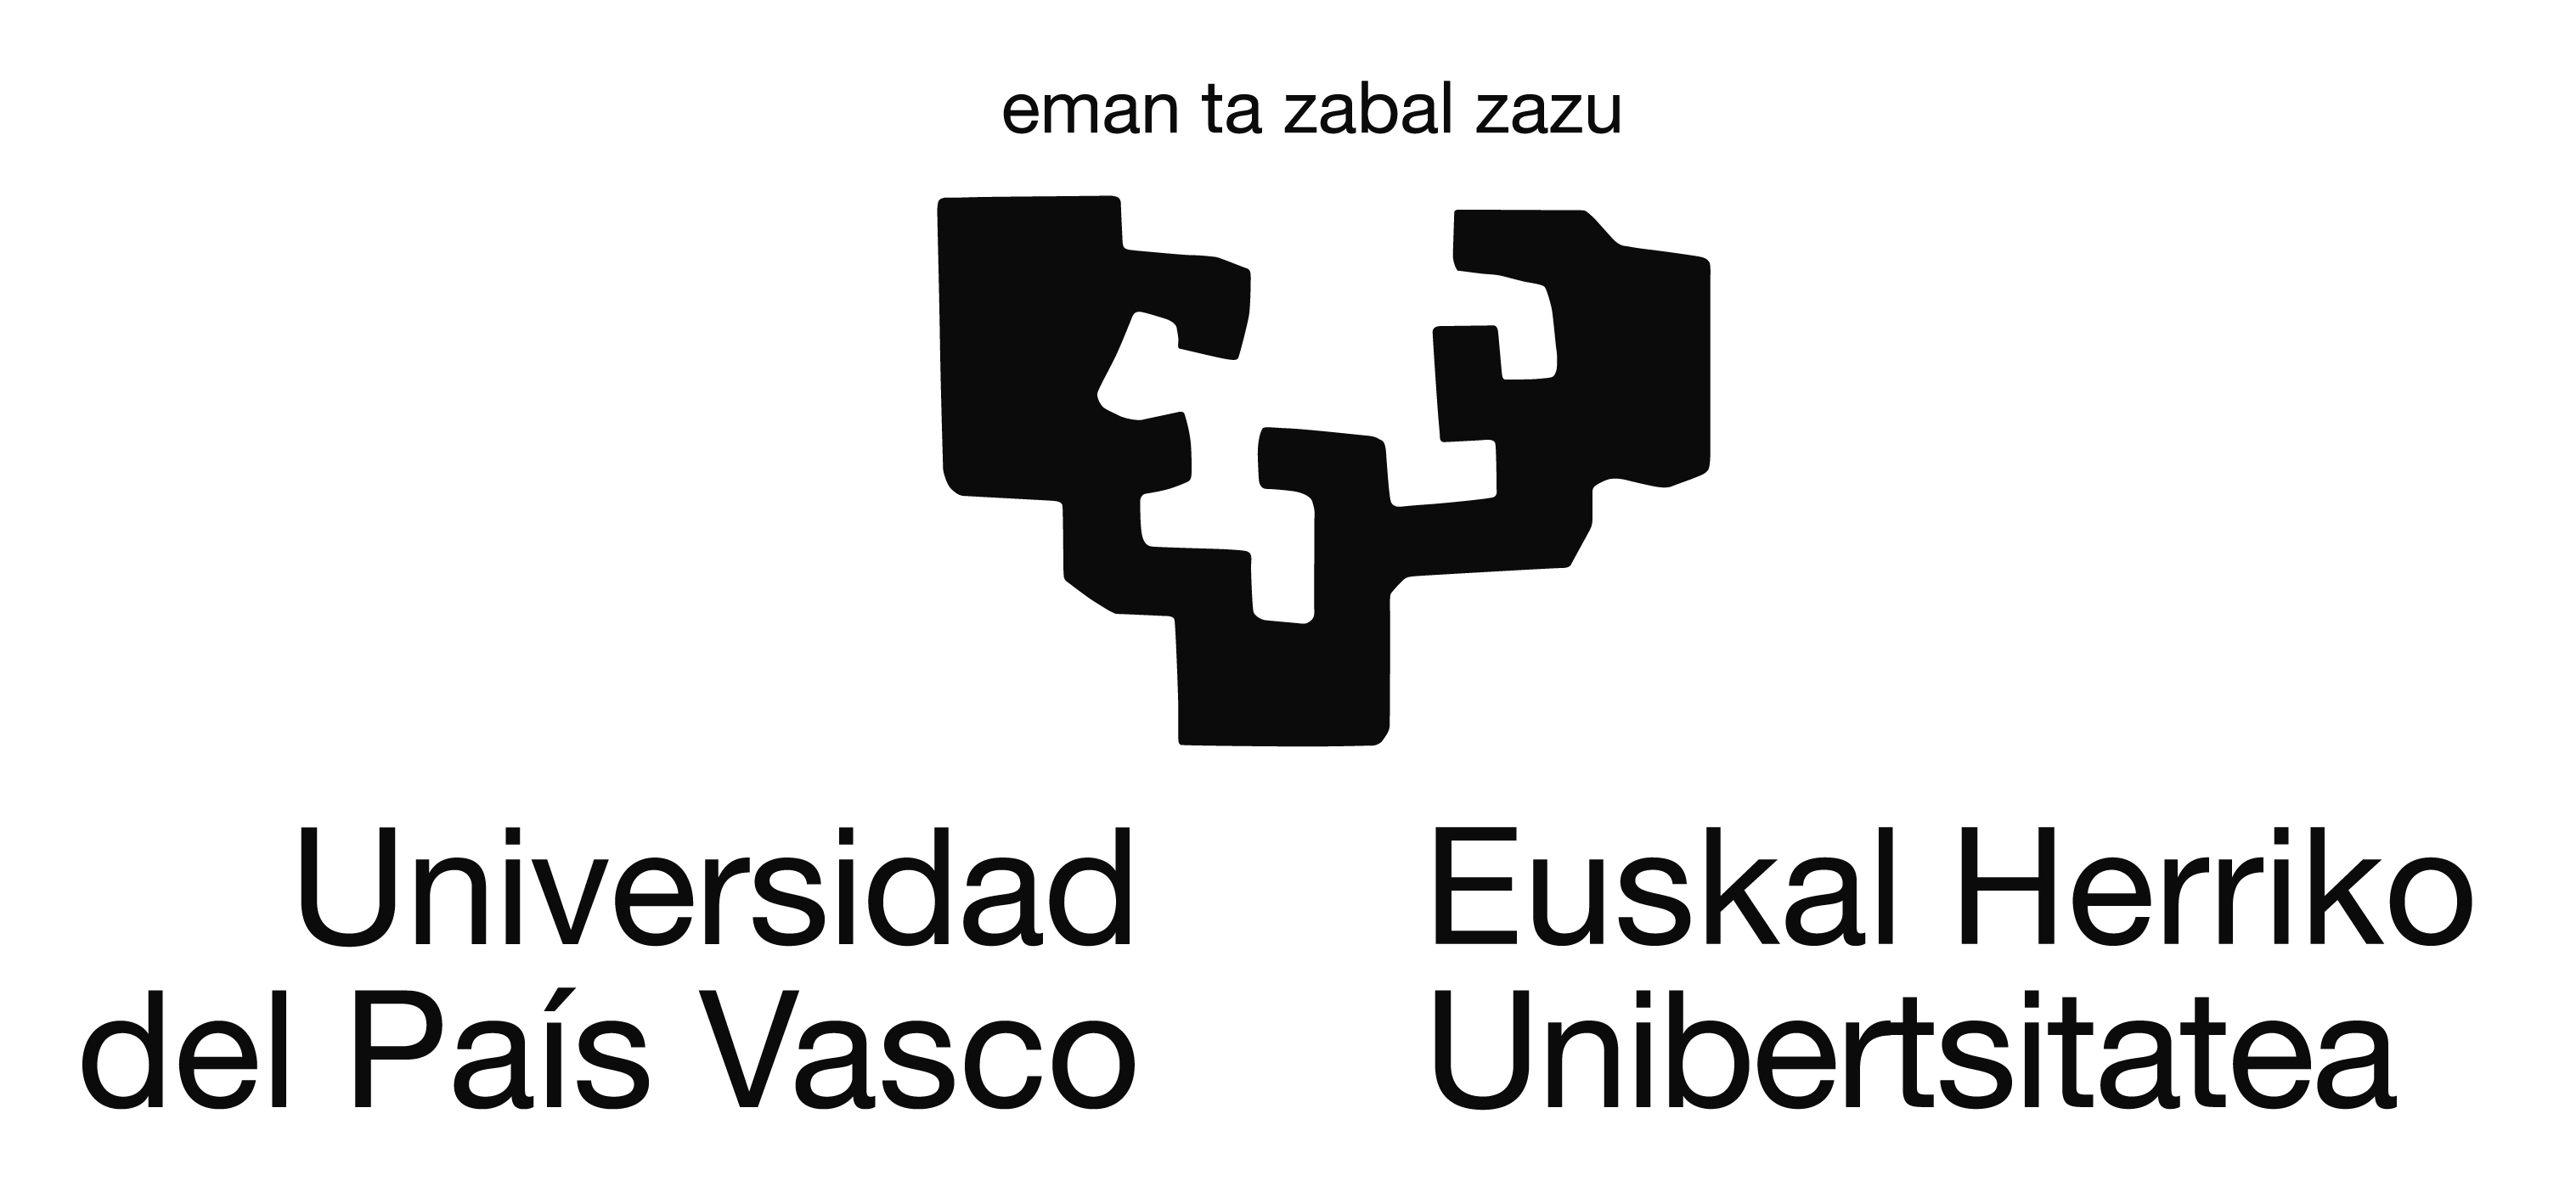 EHU, University of the Basque Country